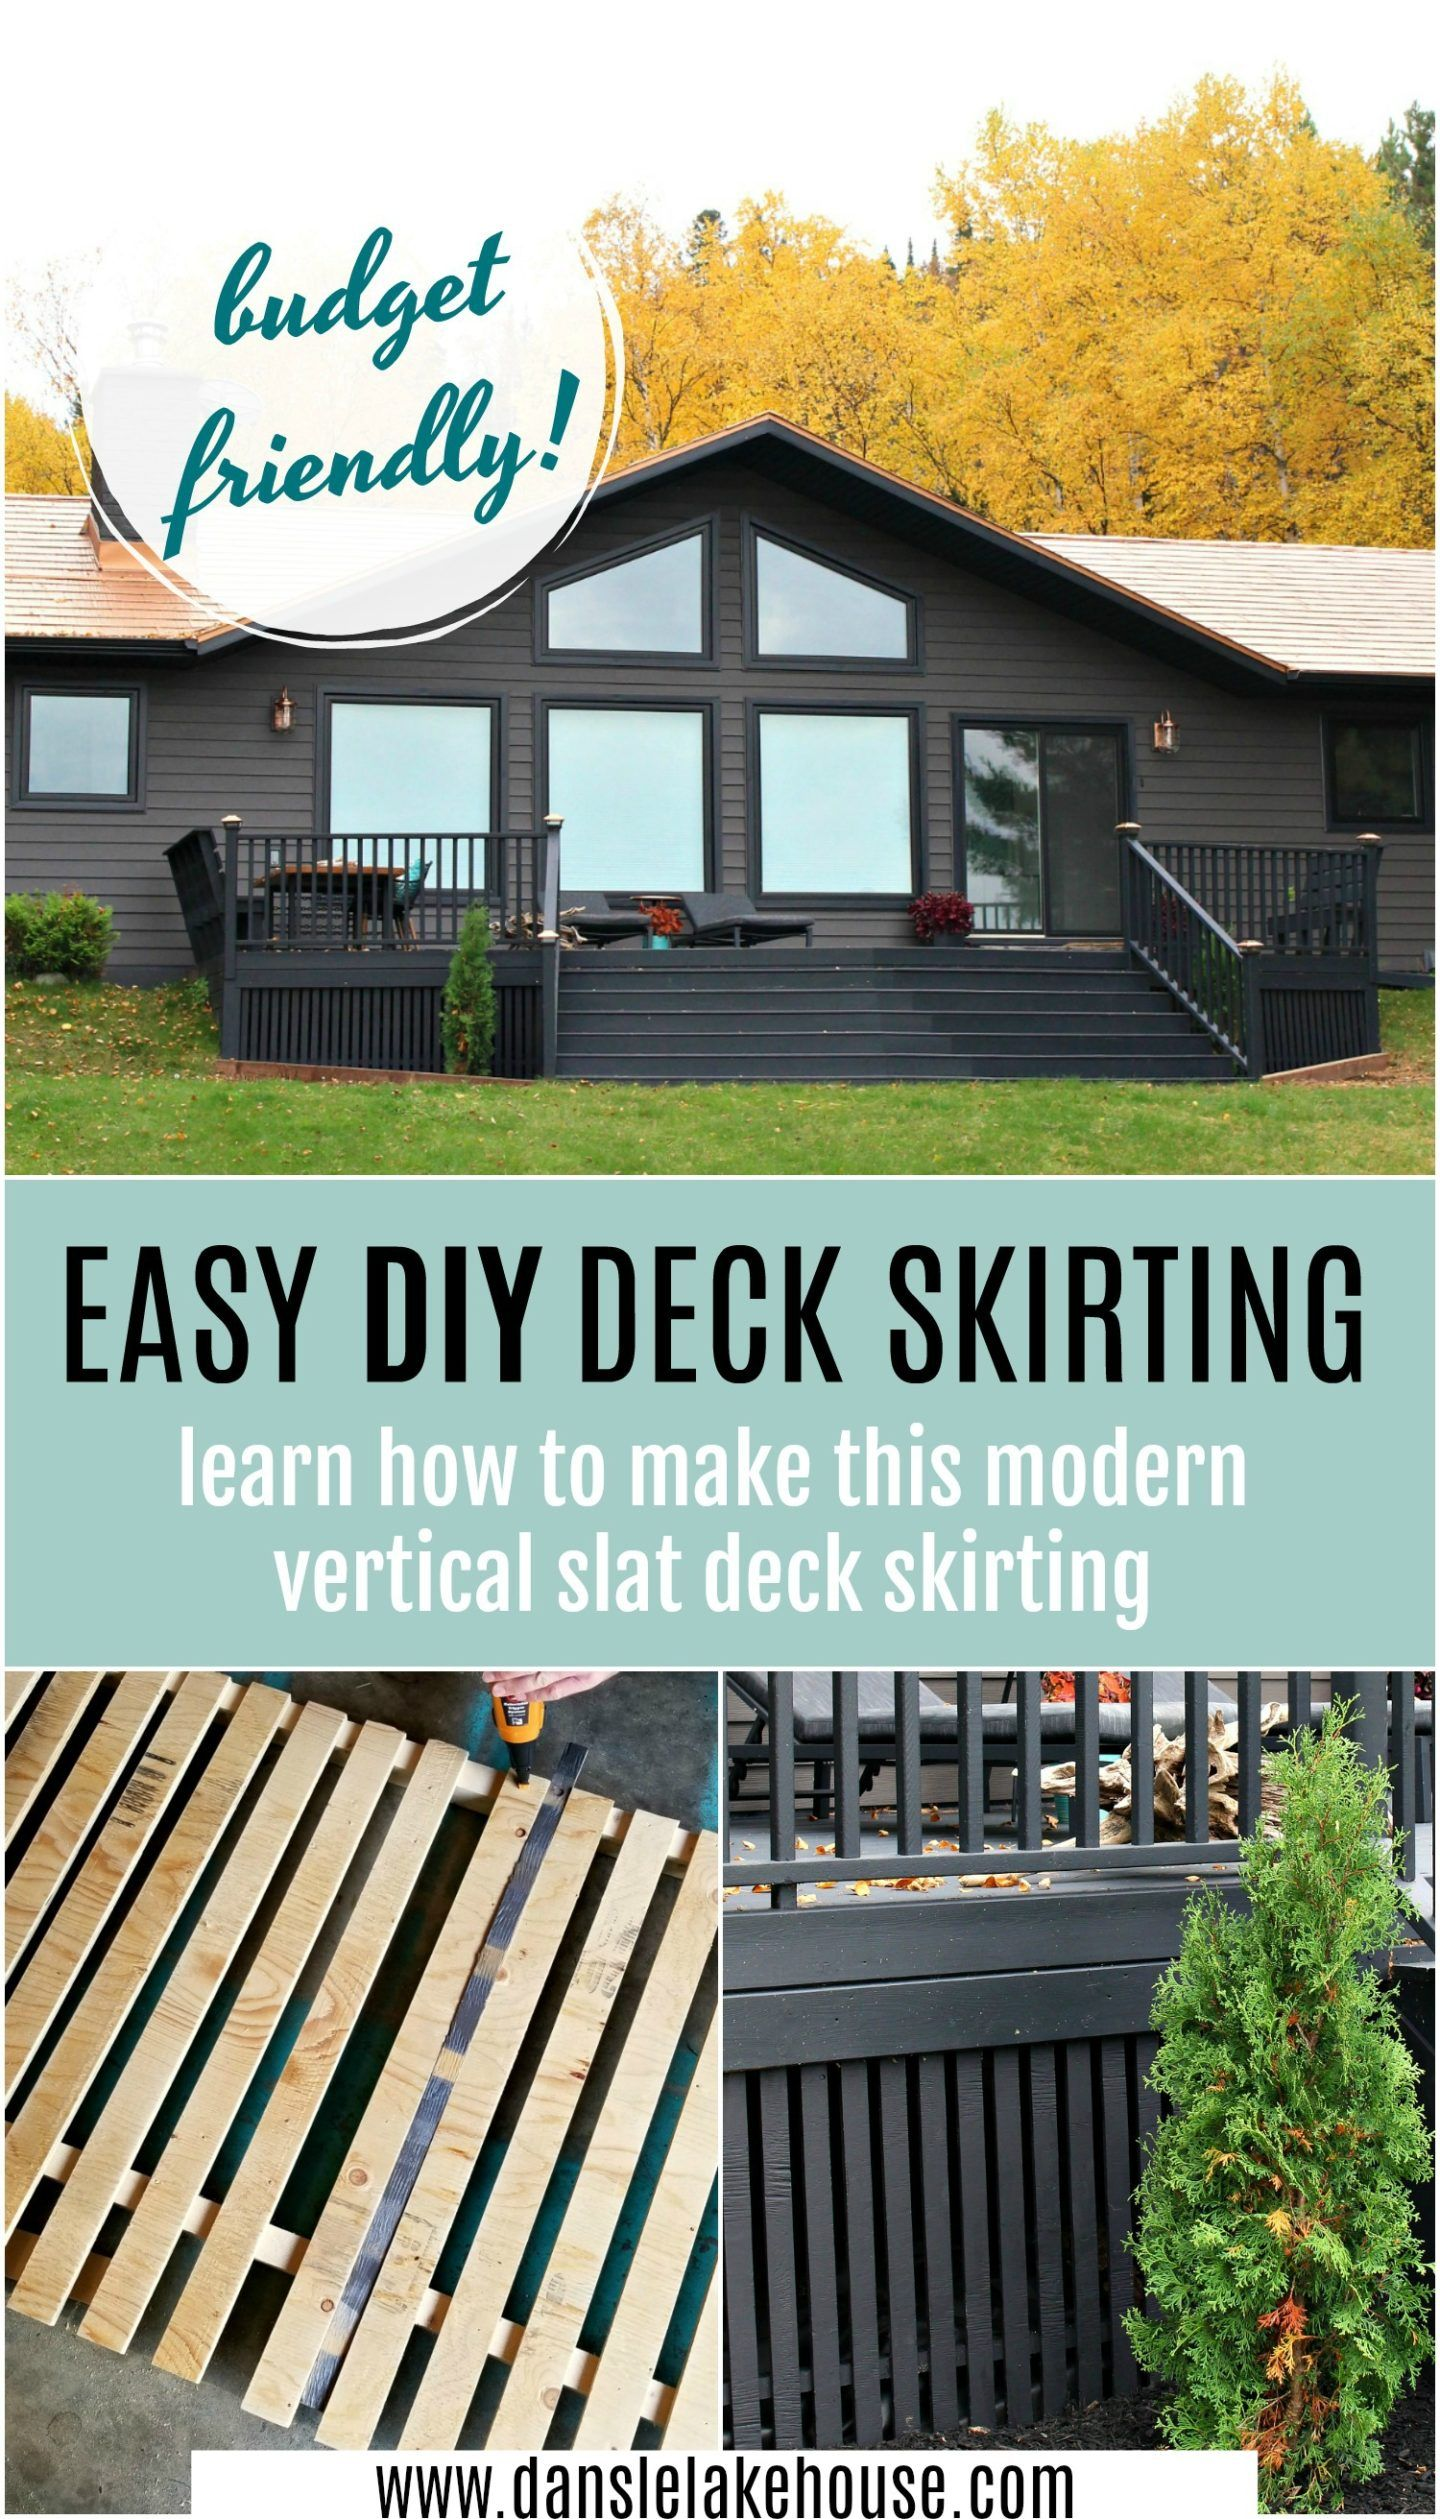 Modern Diy Vertical Slatted Deck Skirting Sponsored By The Home Depot Canada Dans Le Lakehouse Diy Deck Deck Skirting Modern Deck